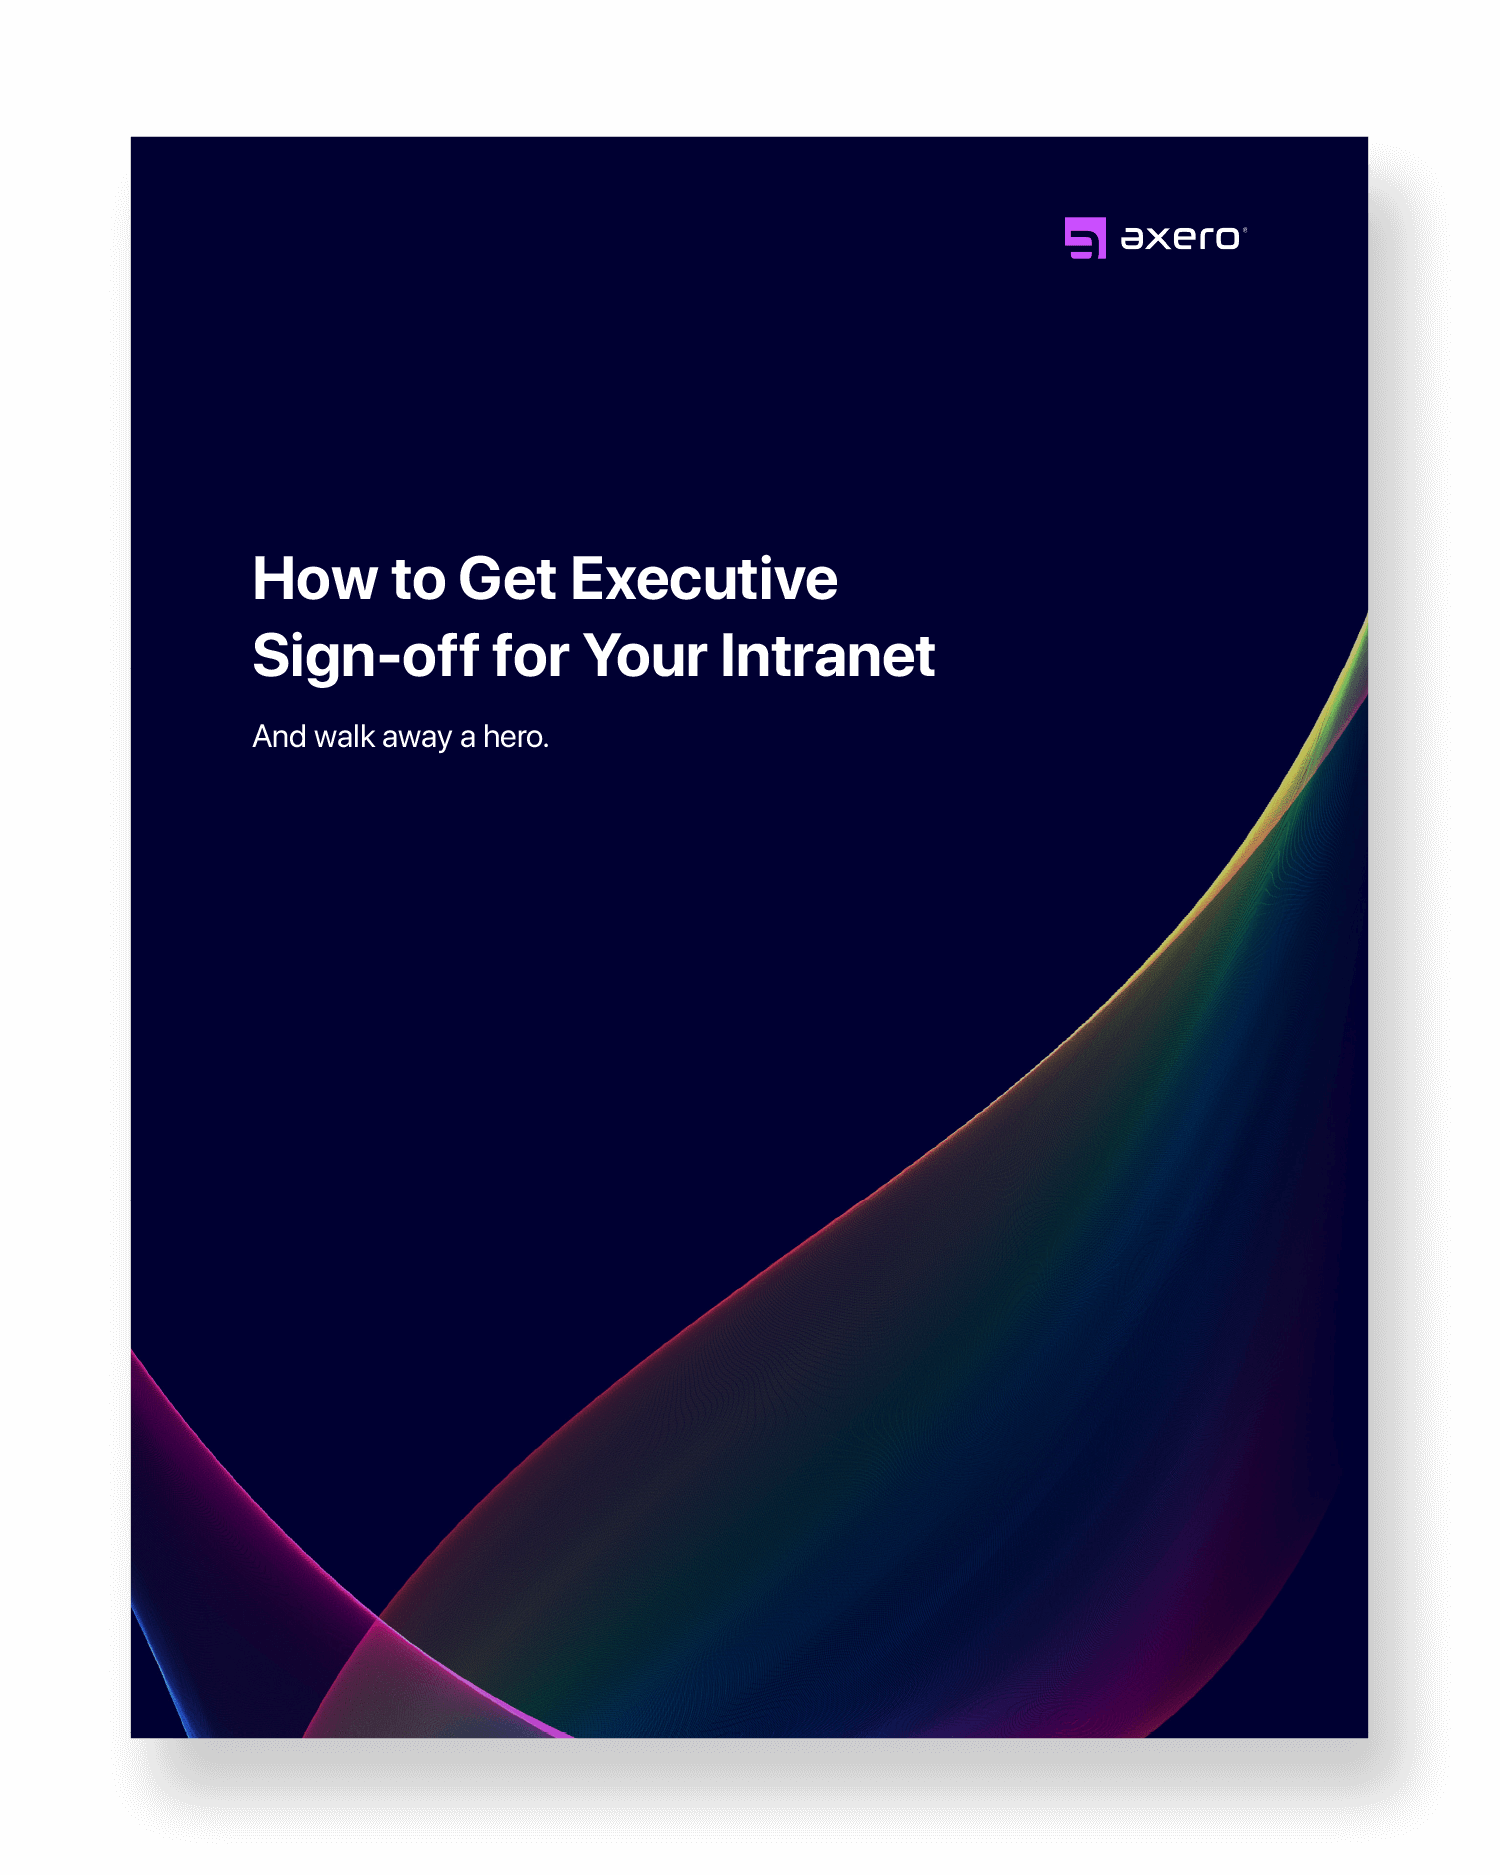 How to Get Executive Sign-off for Your Intranet